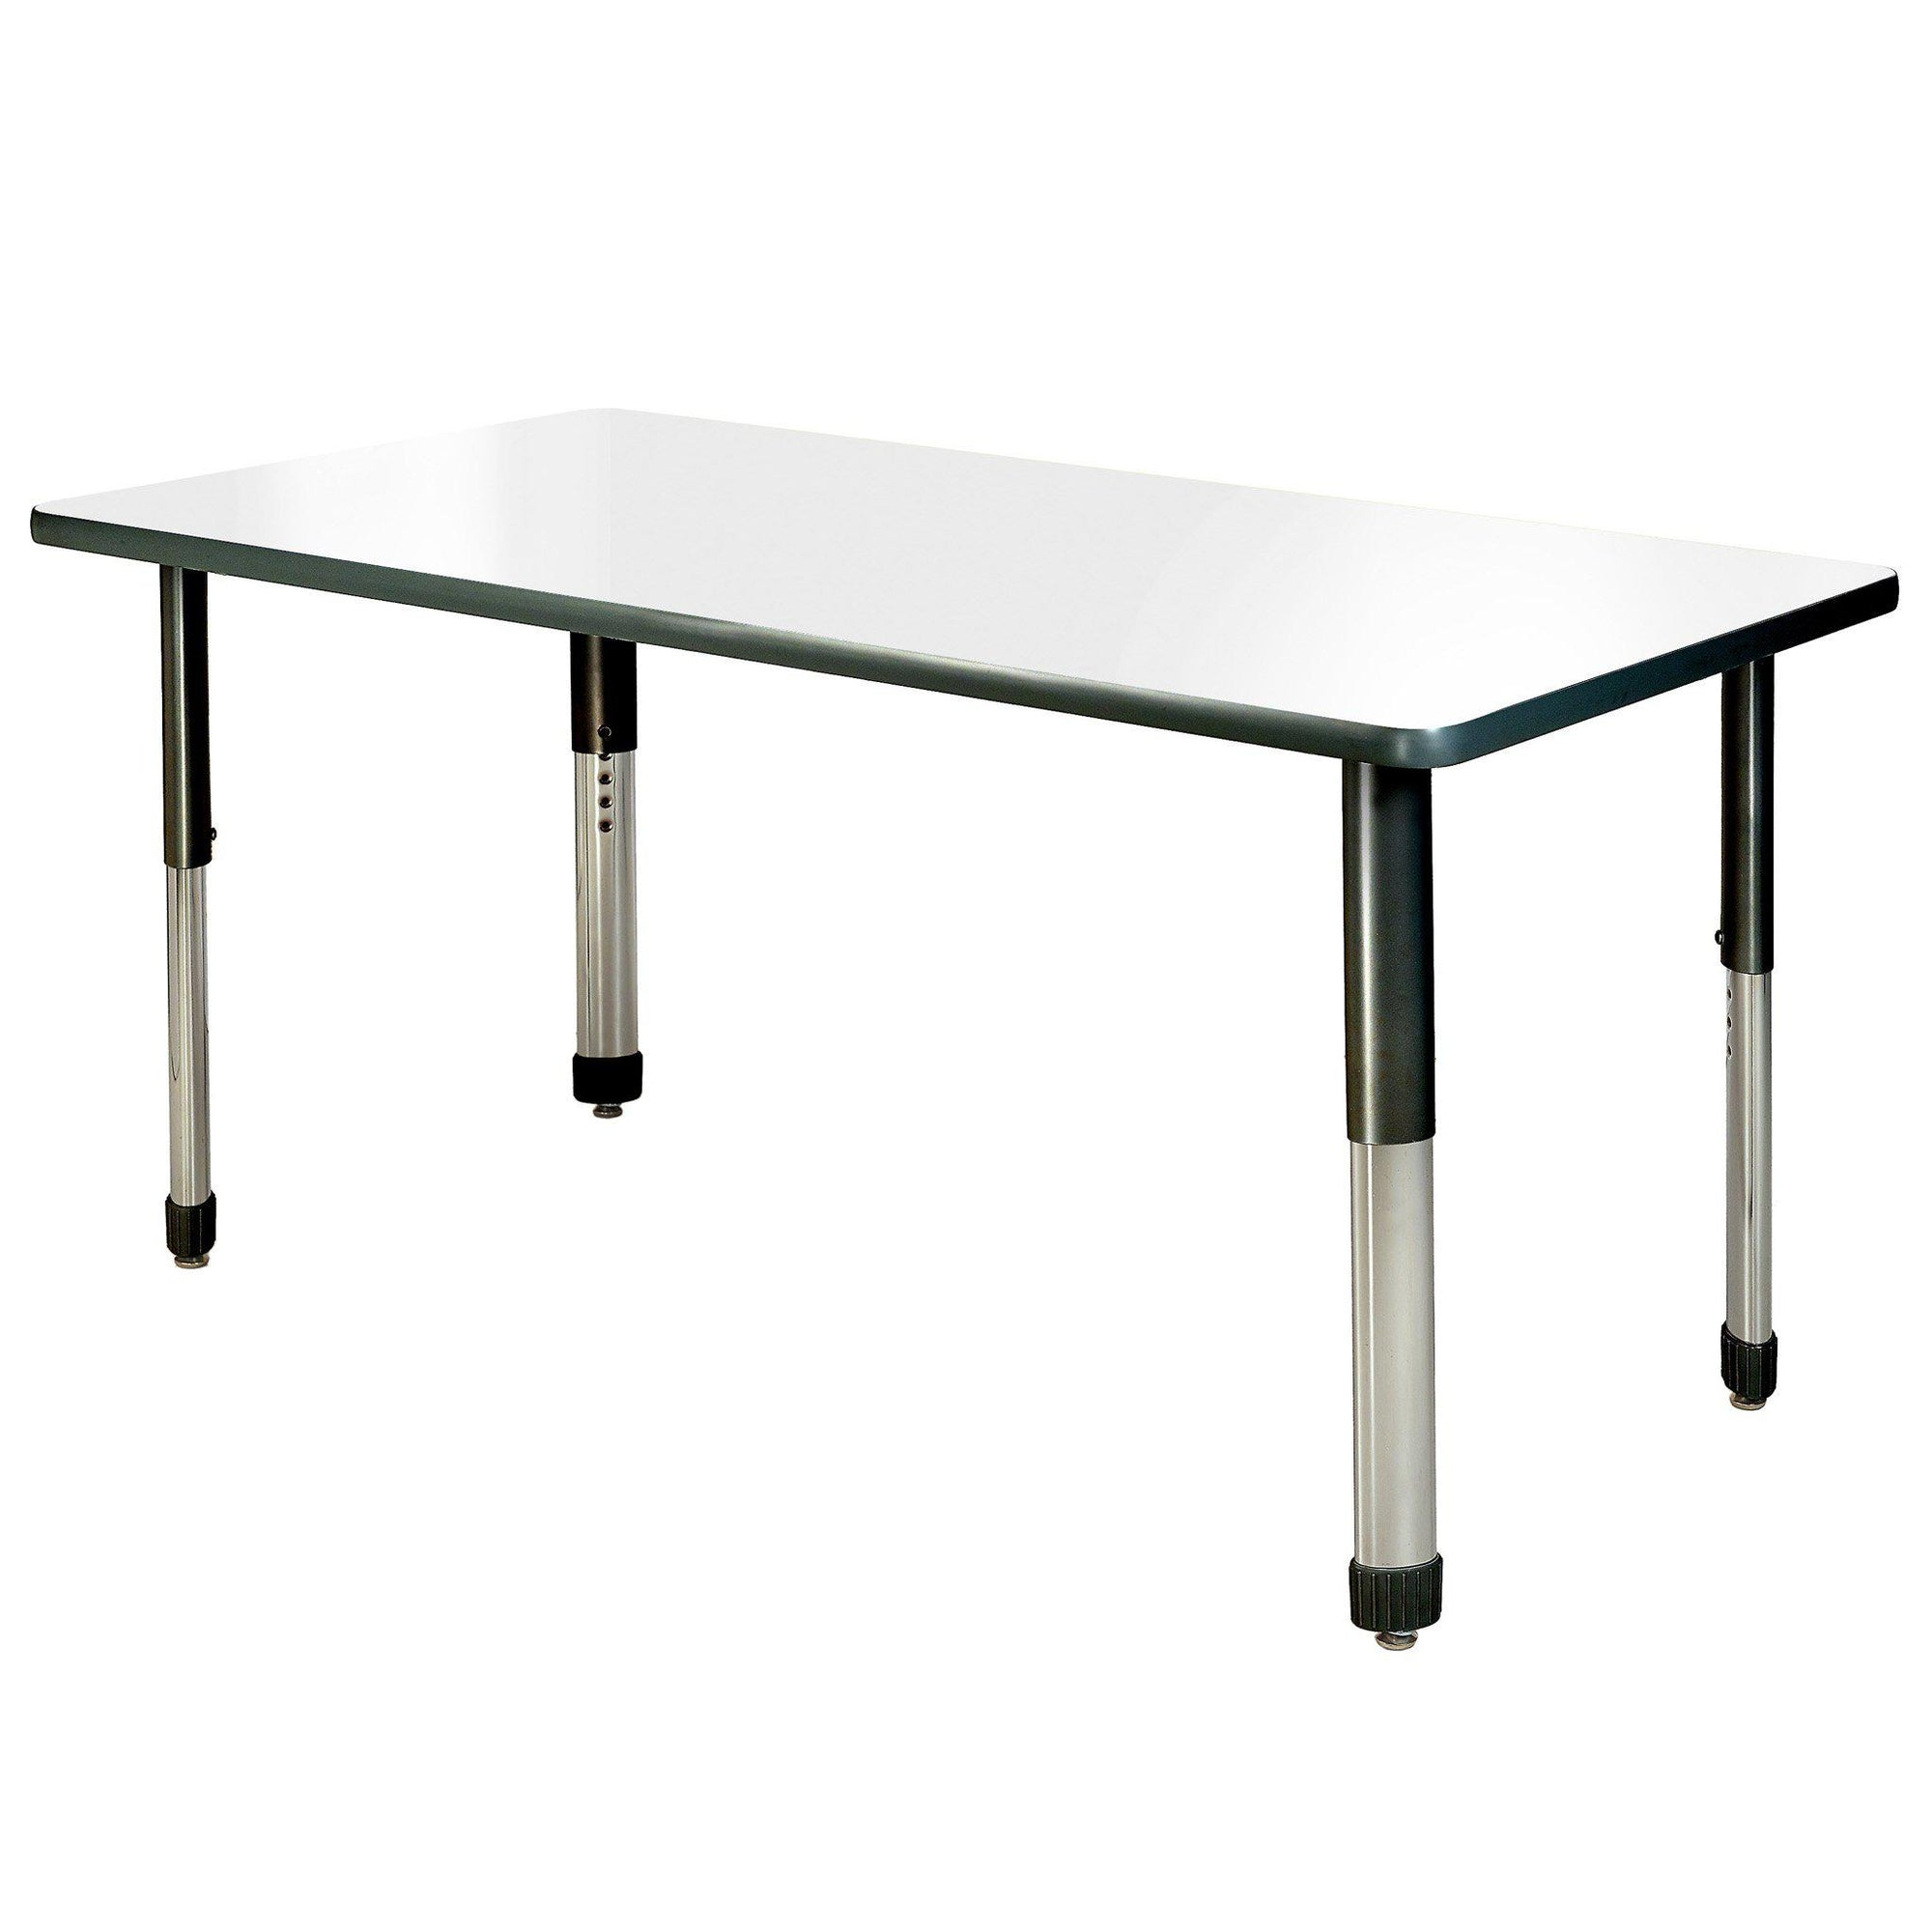 "Aero Dry Erase Activity Table, 30"" x 60"" Rectangle, Oval Adjustable Height Legs"